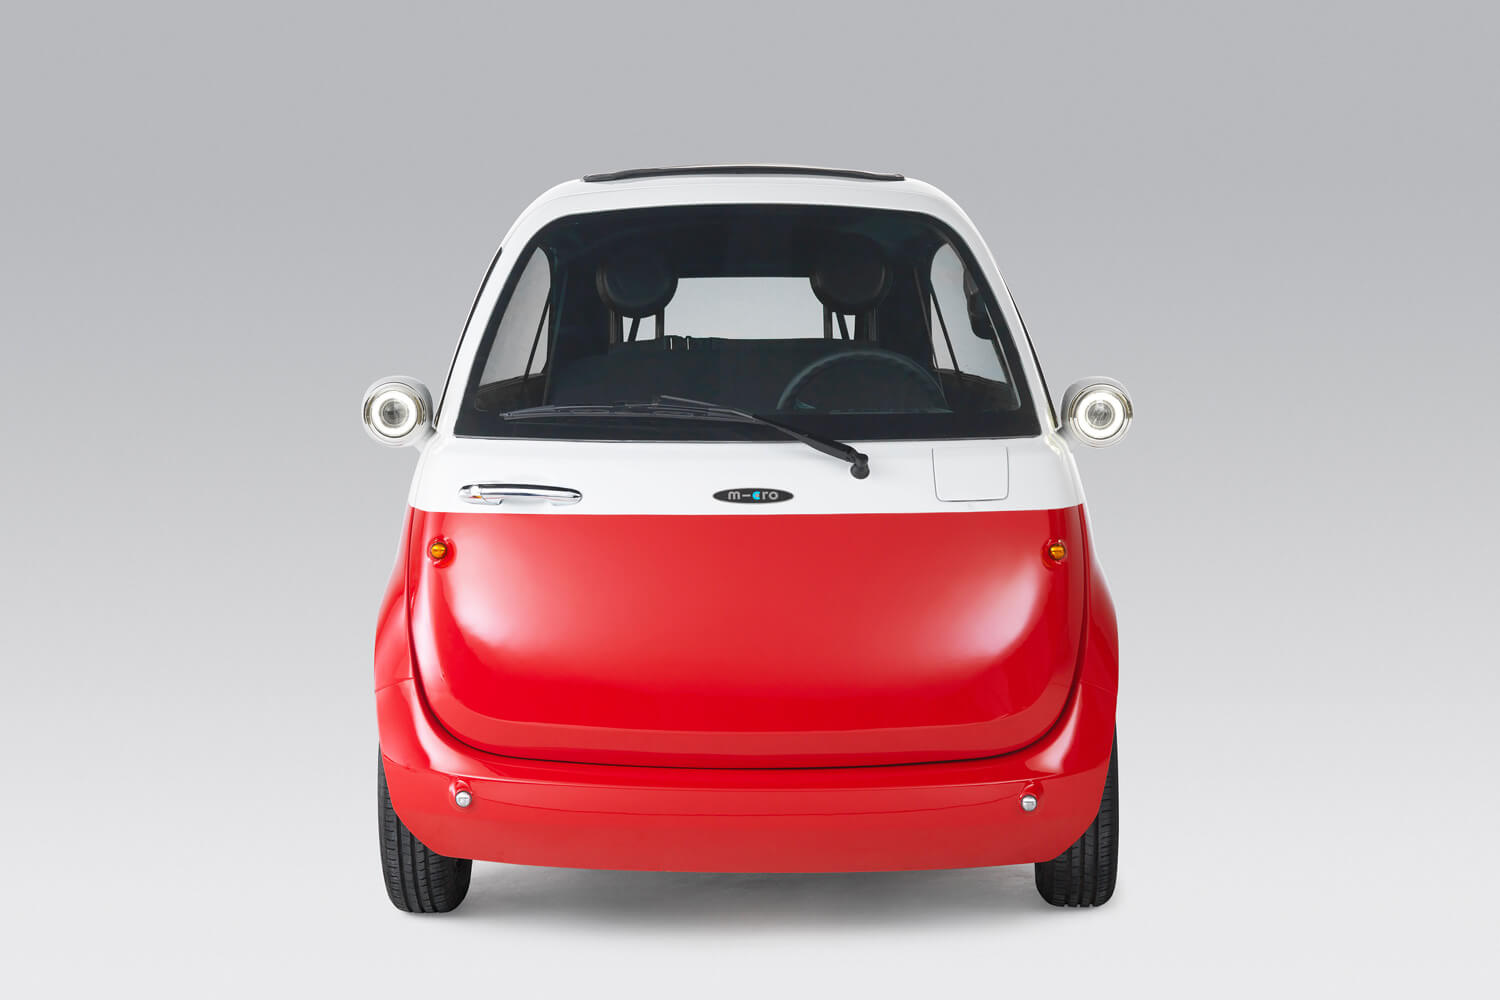 Spiegel Ebay Gebraucht Microlino This Is Not A Car Micro Mobility